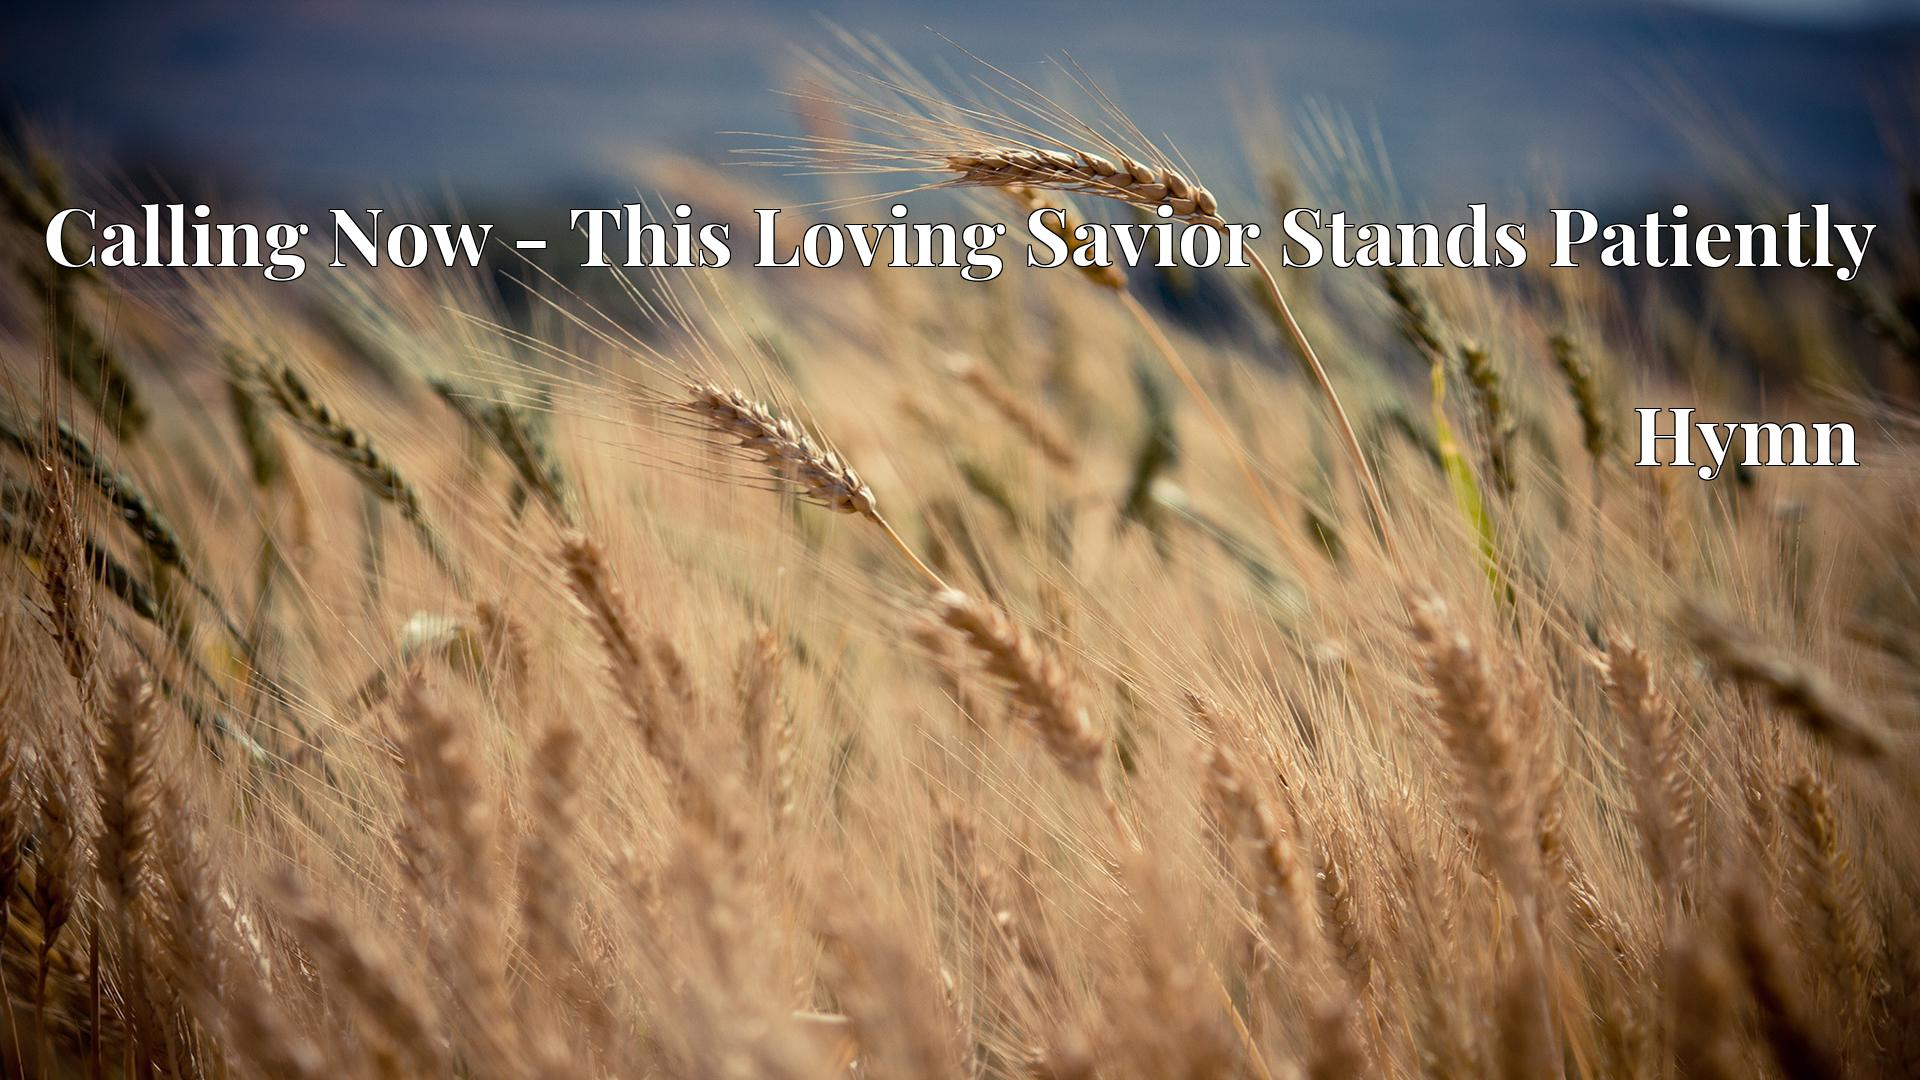 Calling Now - This Loving Savior Stands Patiently Hymn